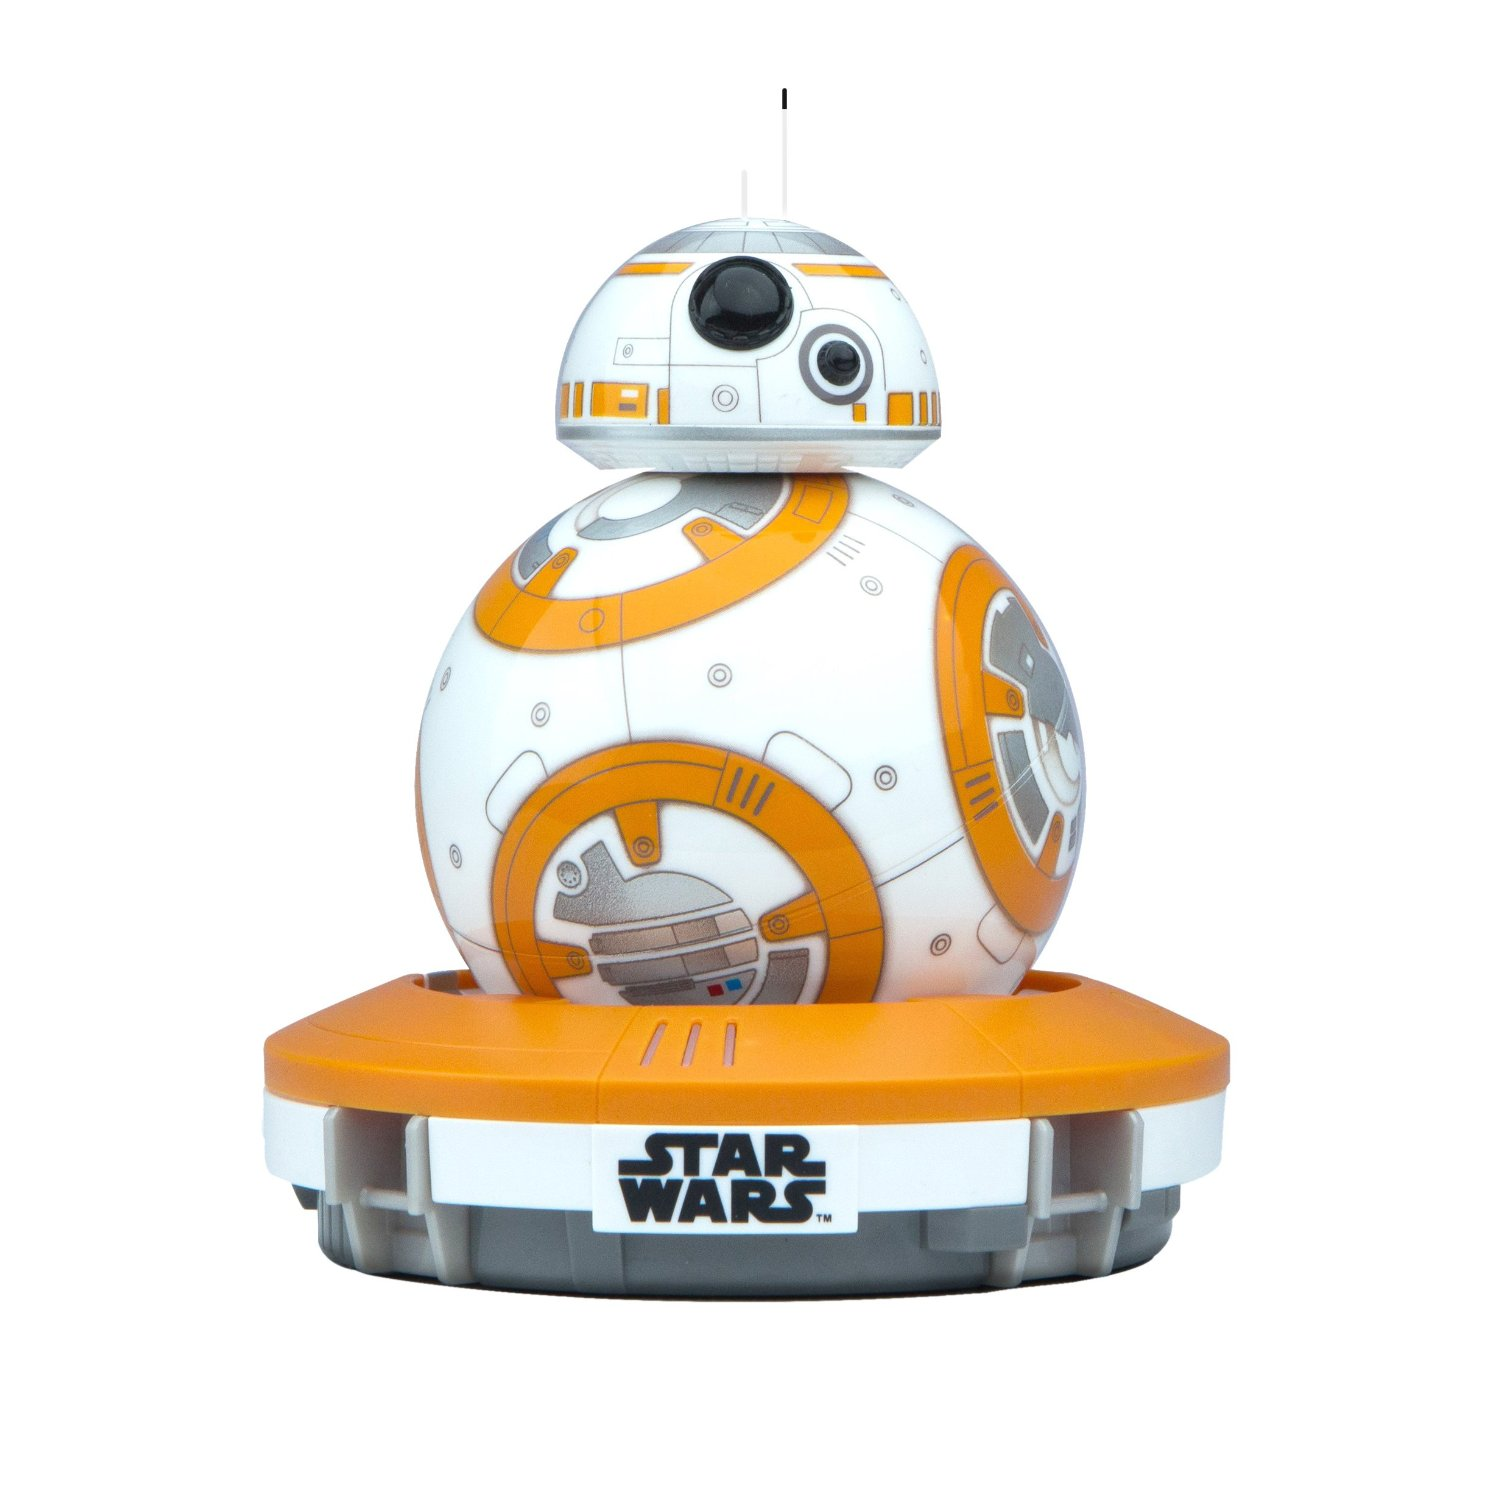 Coolest Star Wars toys for grownups online